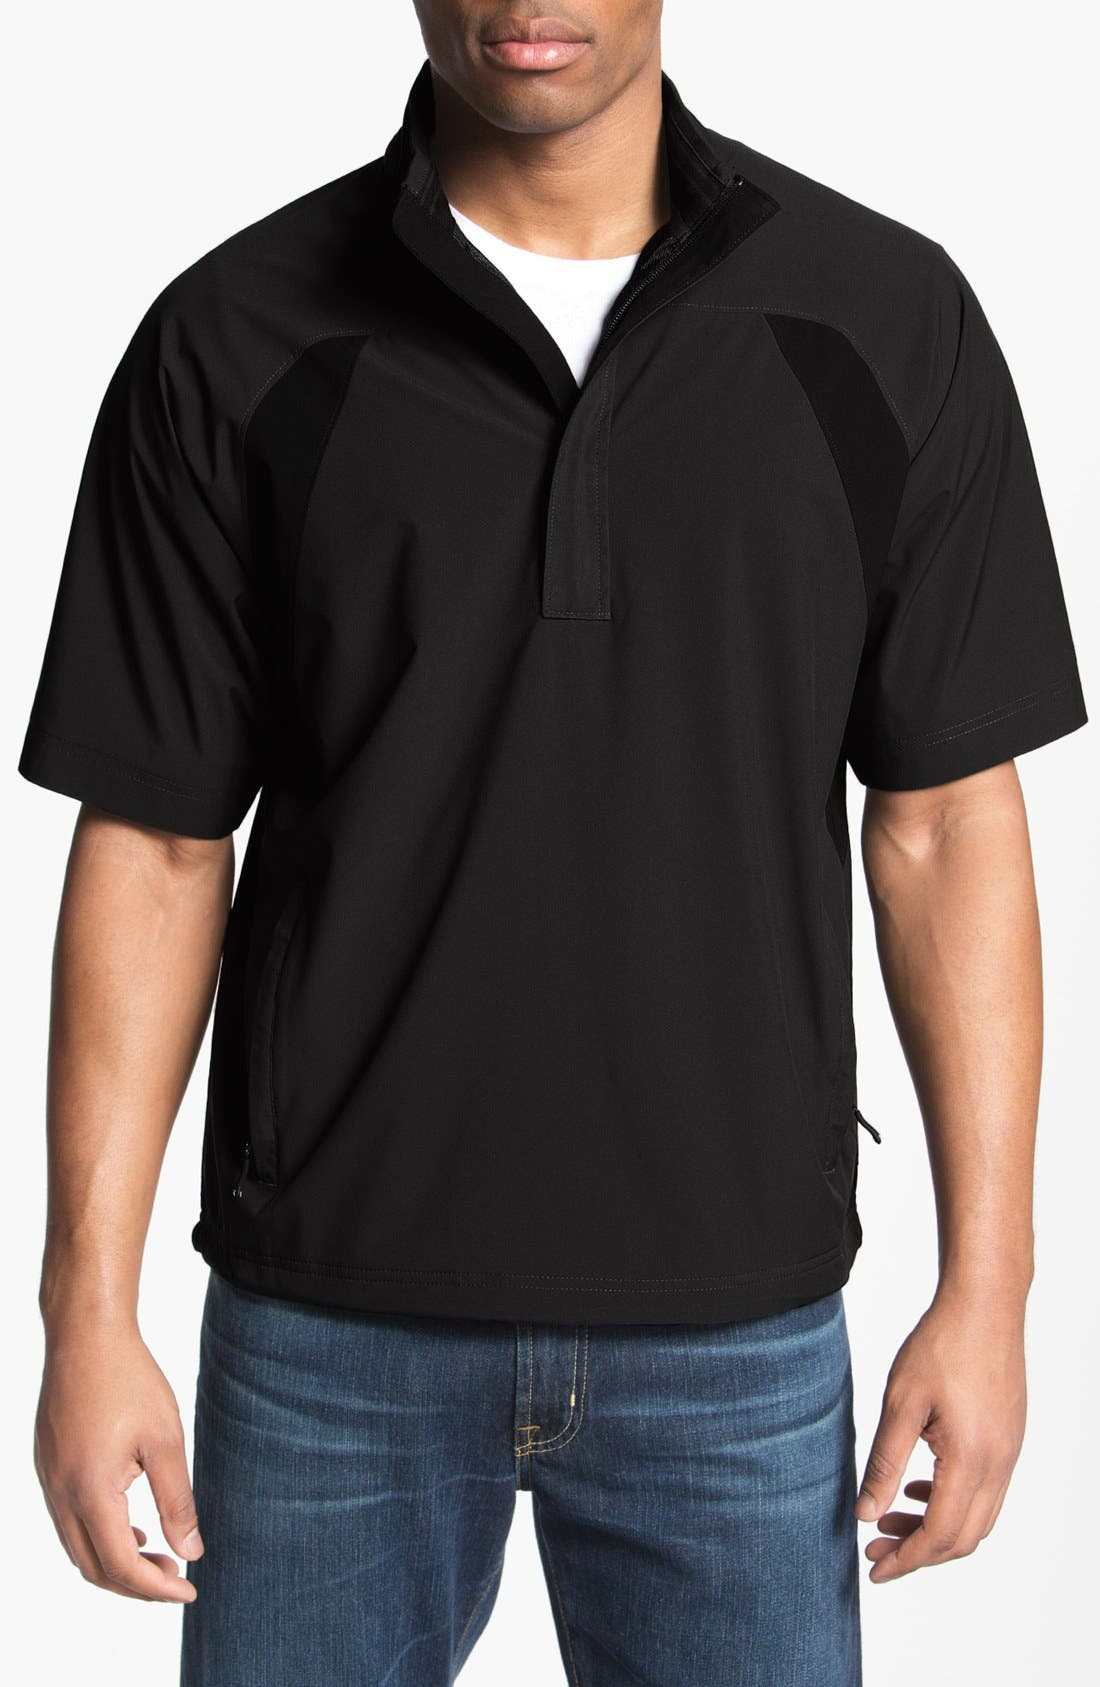 Alternate Image 1 Selected - Cutter & Buck 'Vital' Quarter Zip Short Sleeve Mid Layer